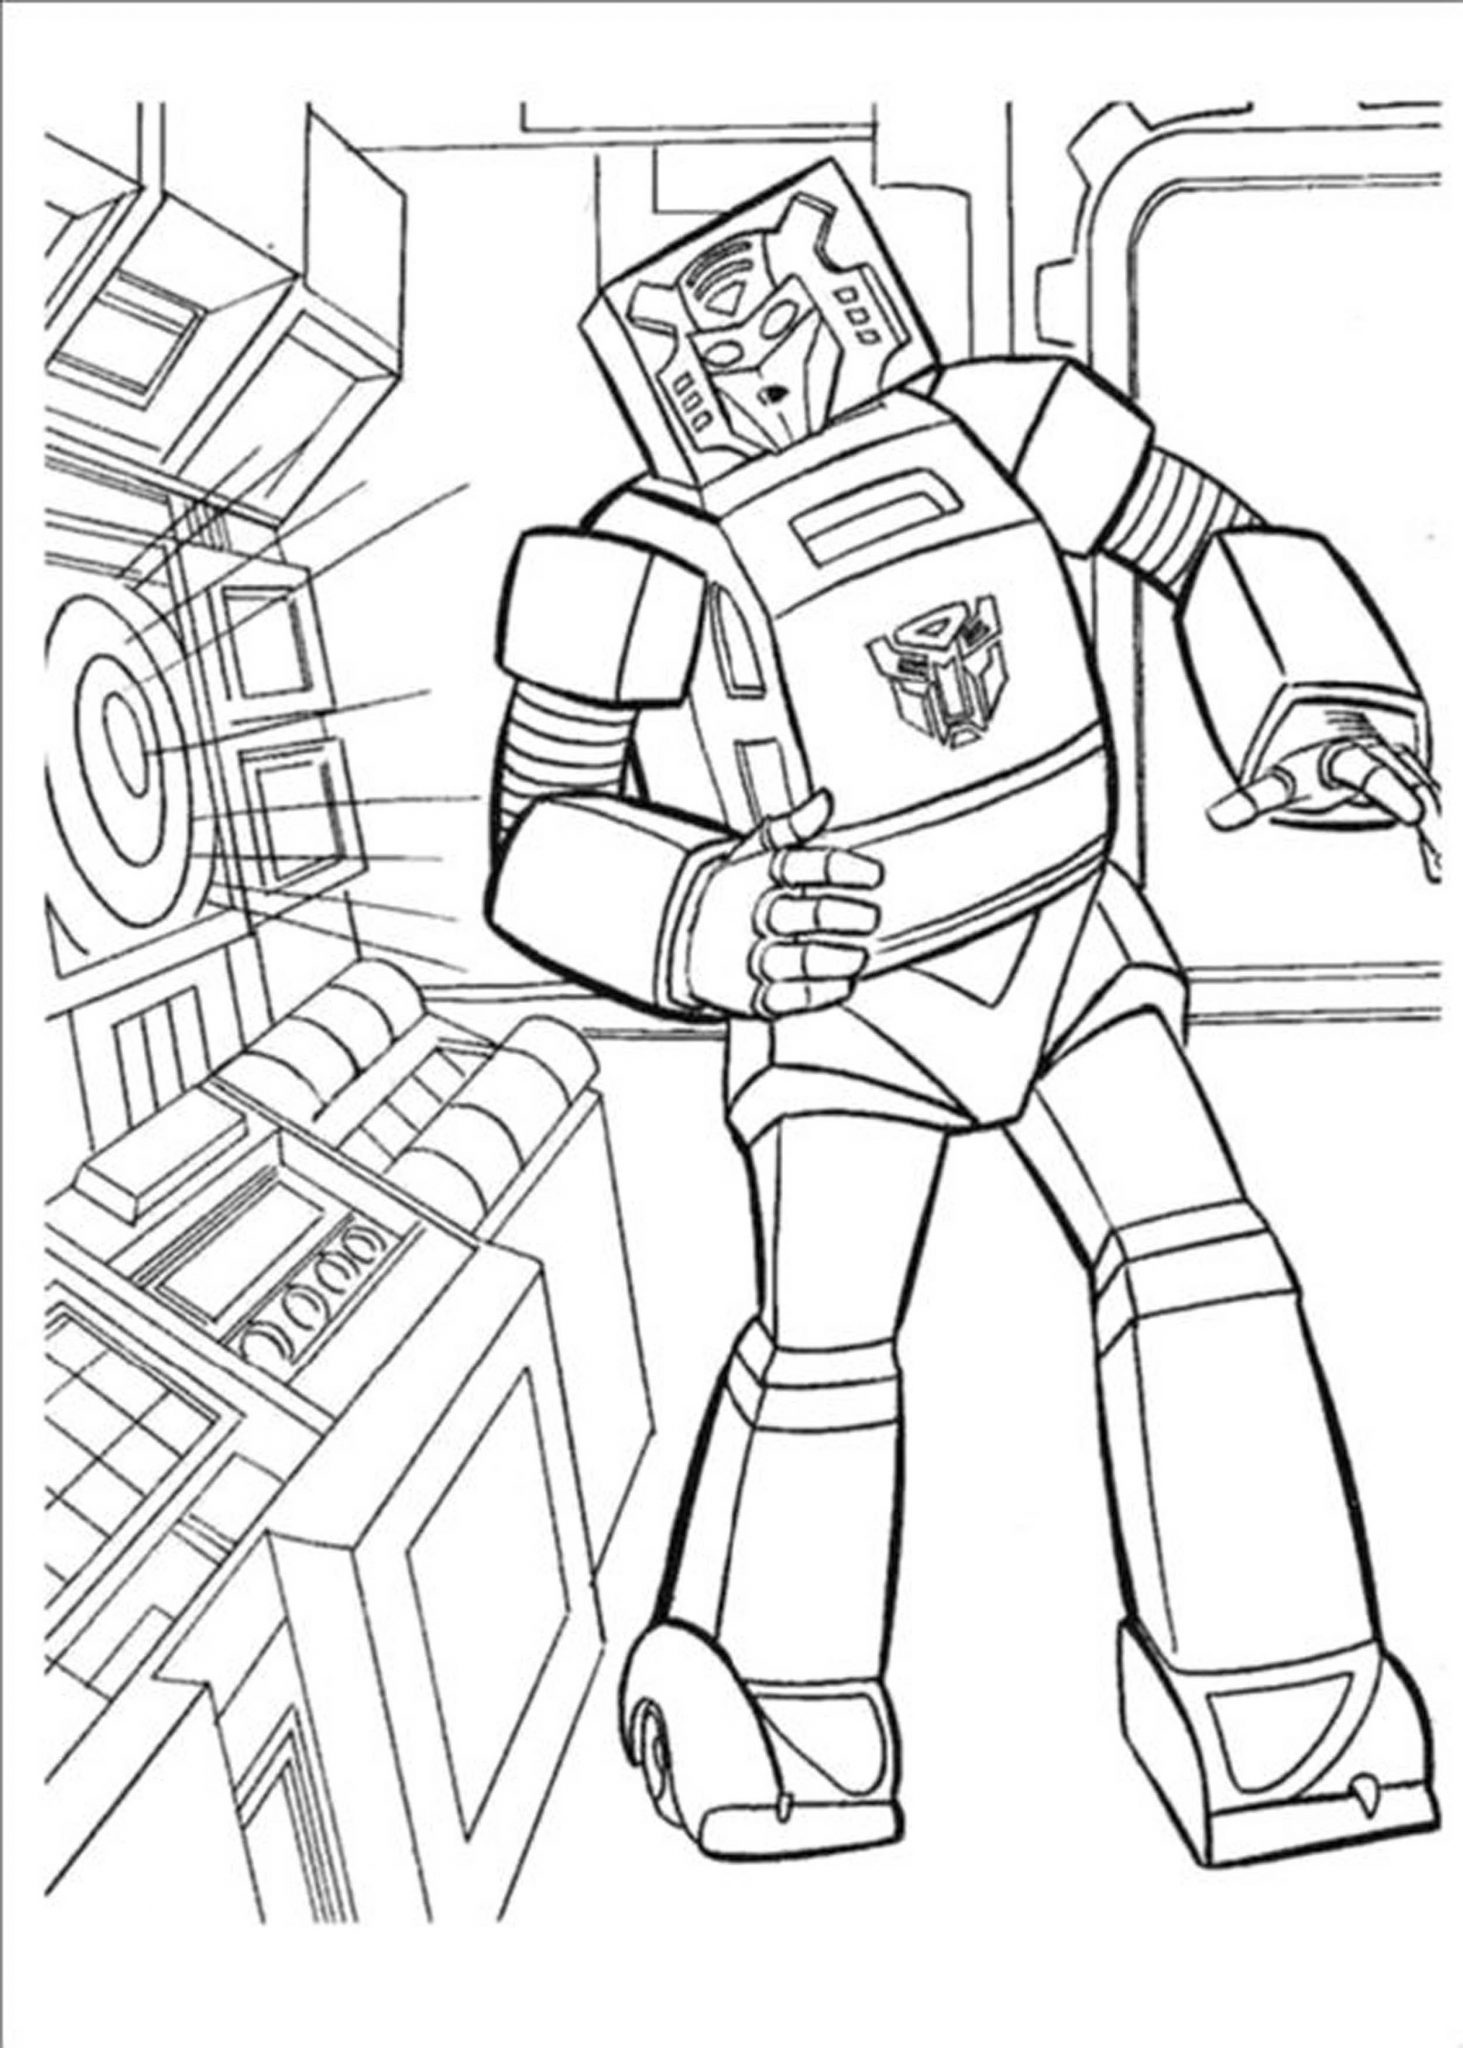 coloring transformers pages transformers coloring pages print or download for free pages coloring transformers